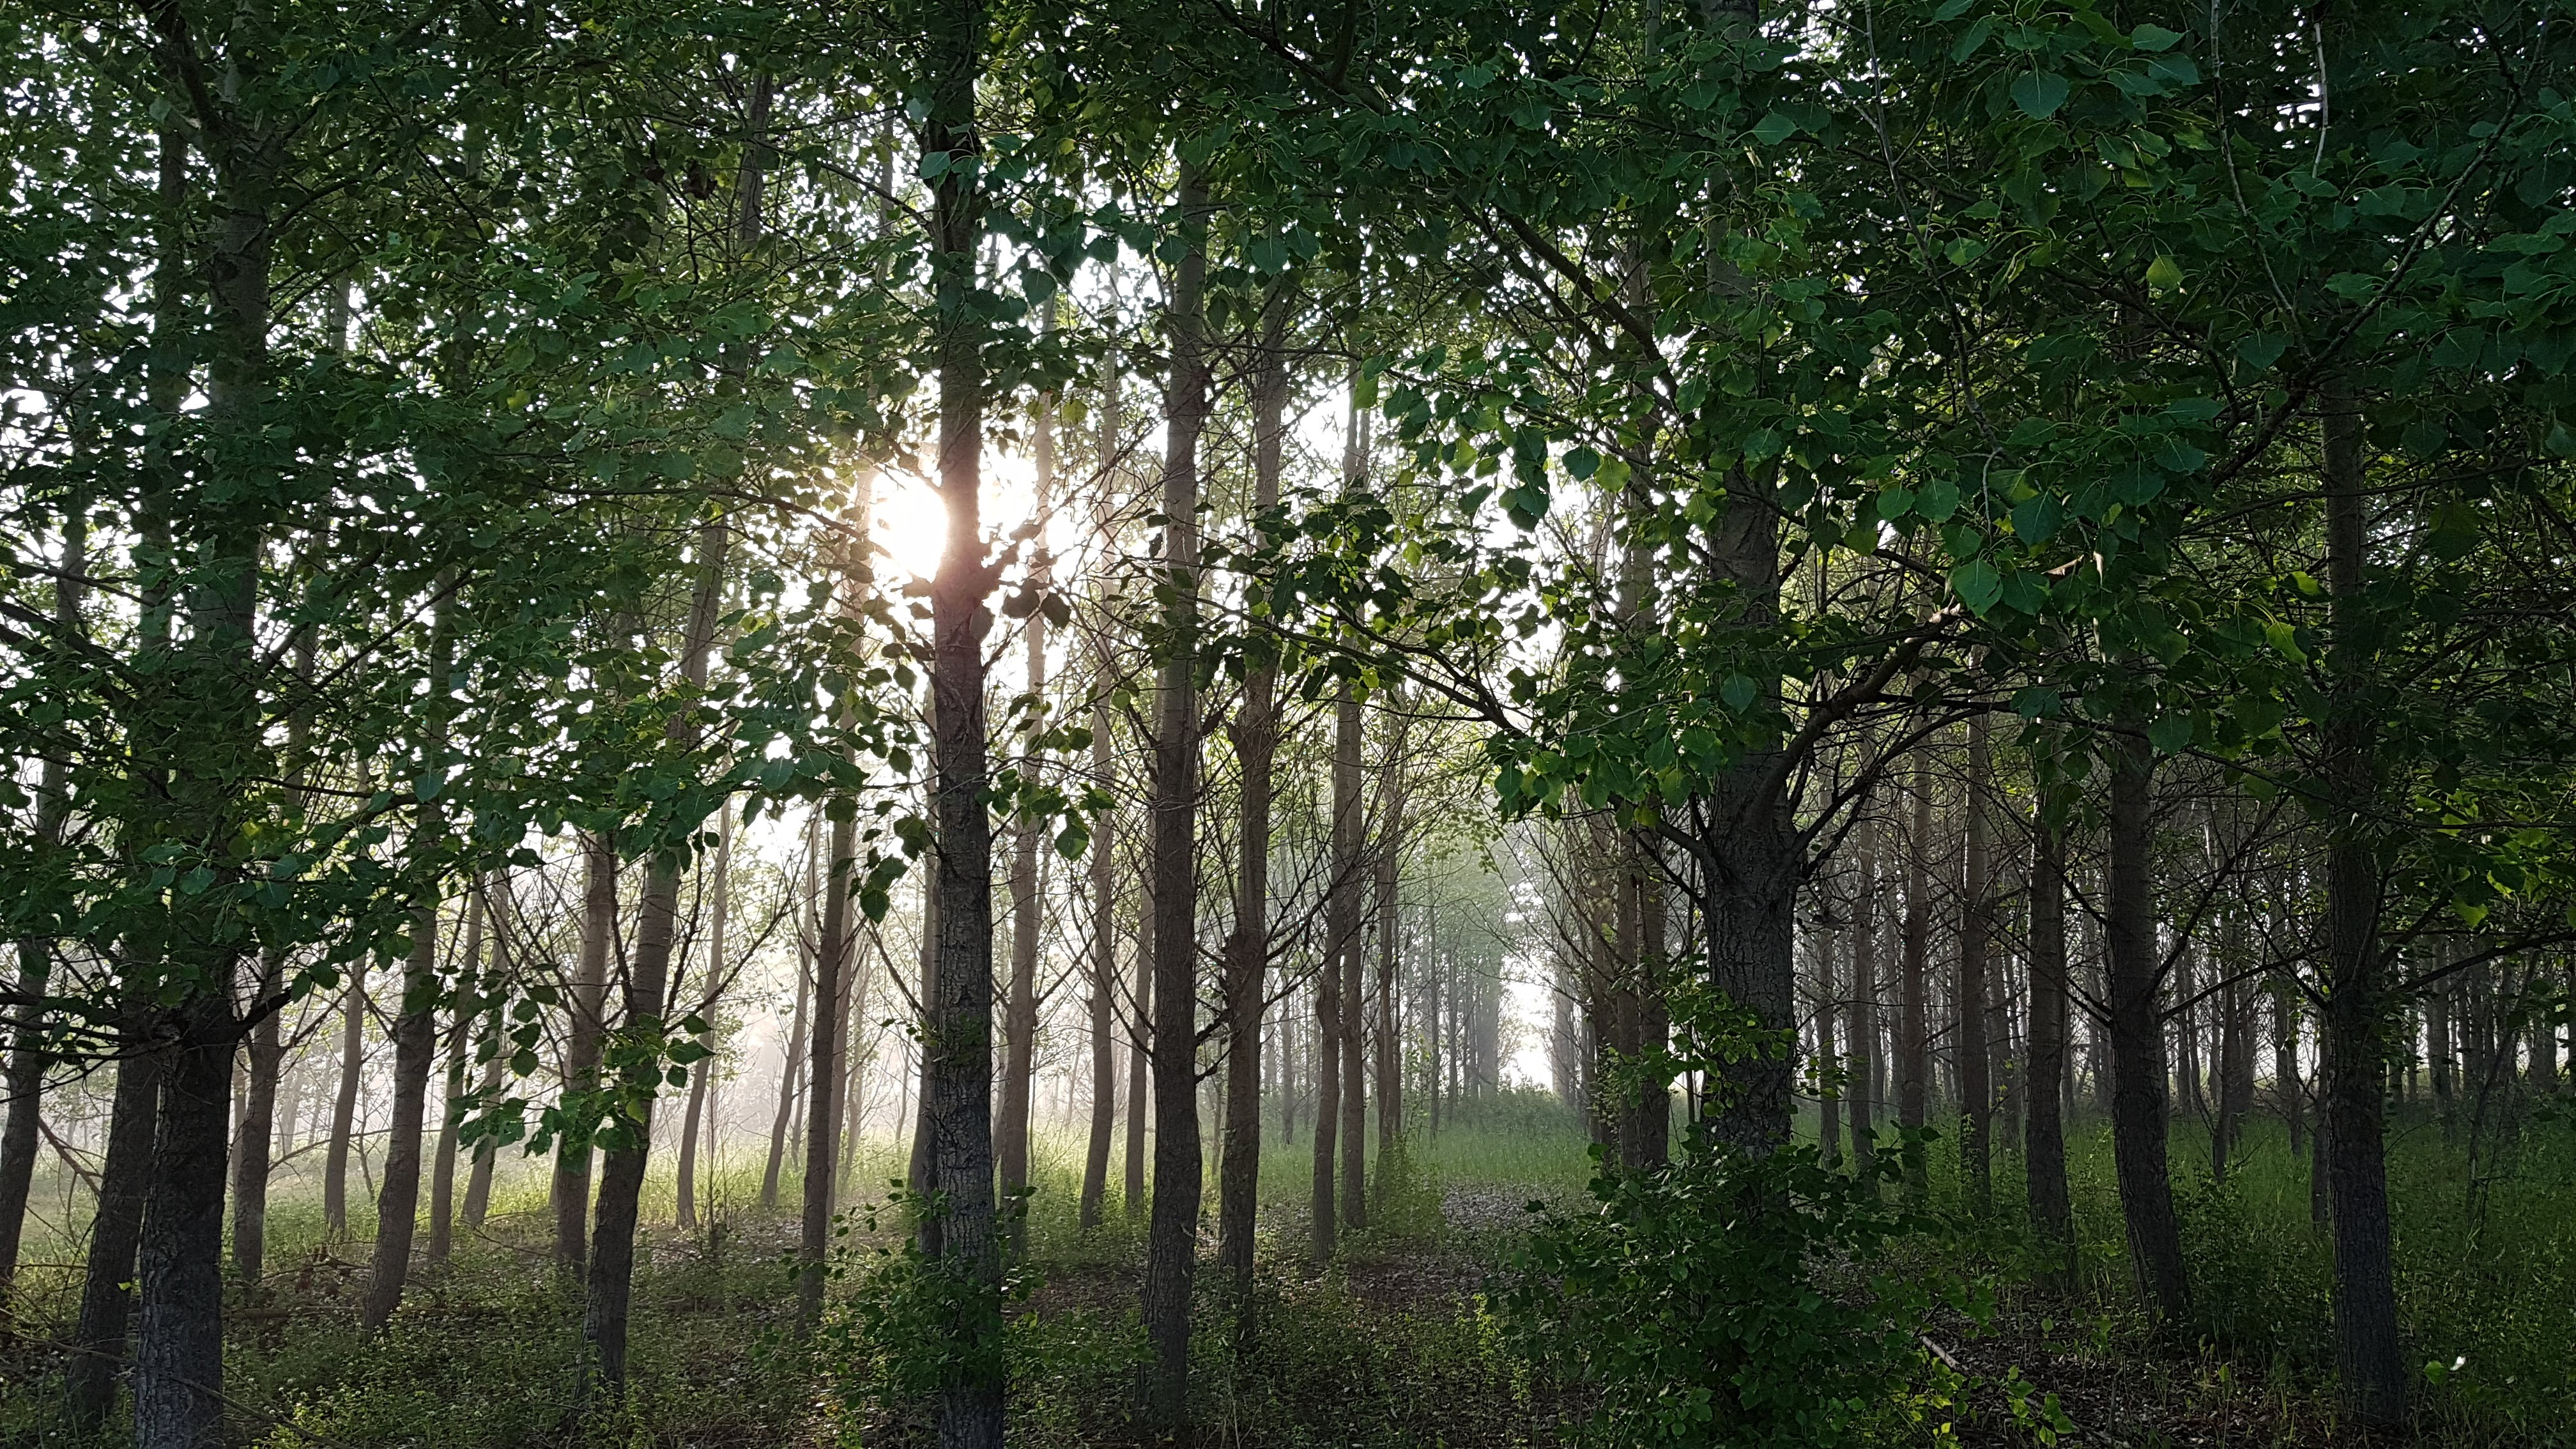 forest view of trees with sunlight shining through